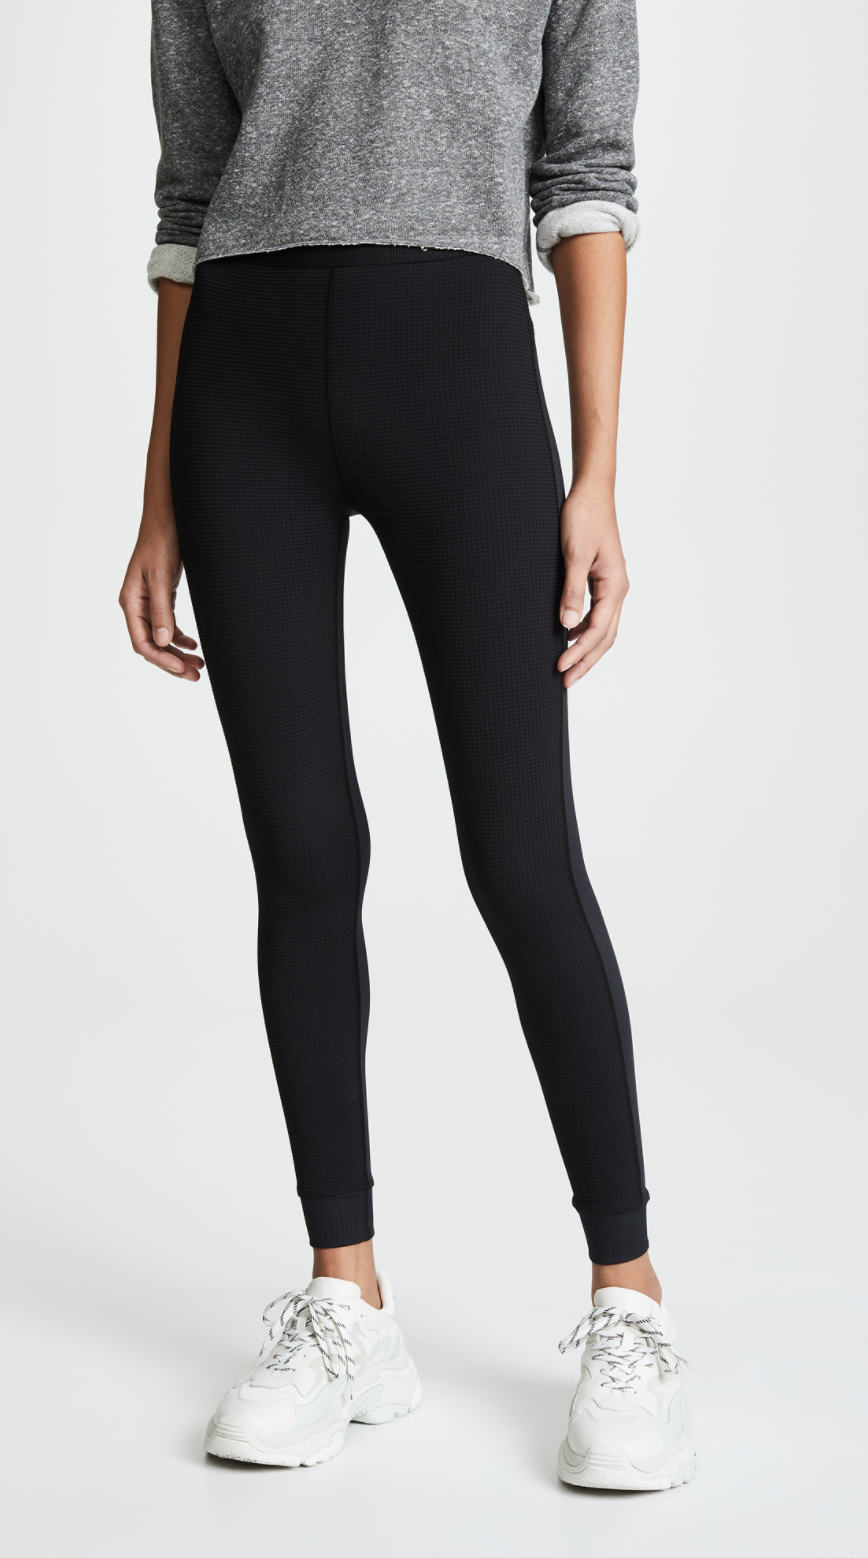 ALALA Thermal Tight Leggings (Photo via ShopBop)